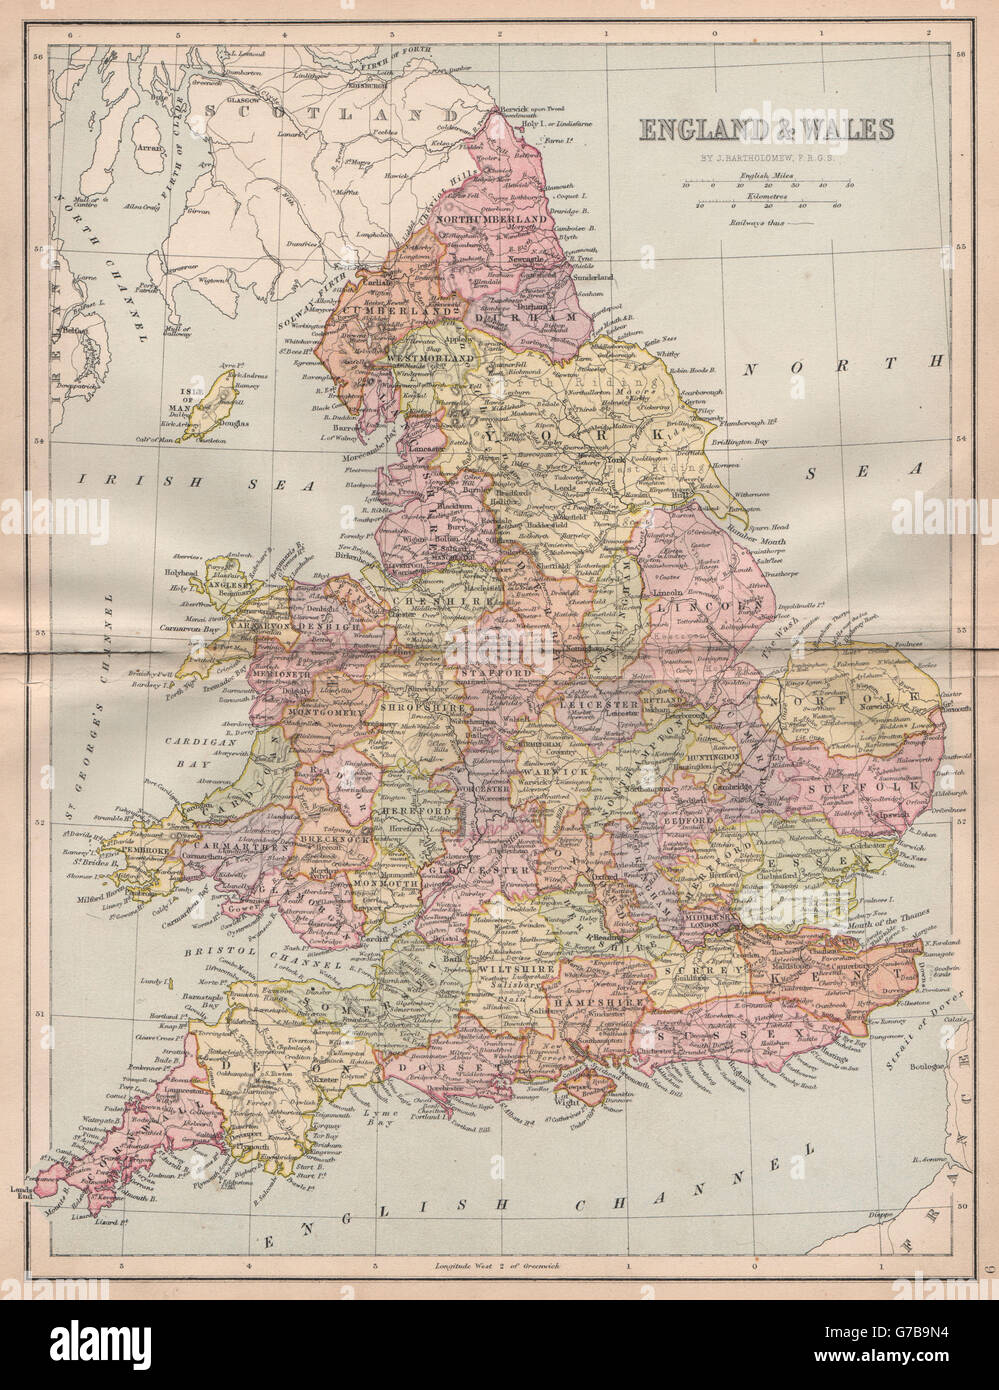 Map Of The Counties In England.Great Britain Map Counties Stock Photos Great Britain Map Counties